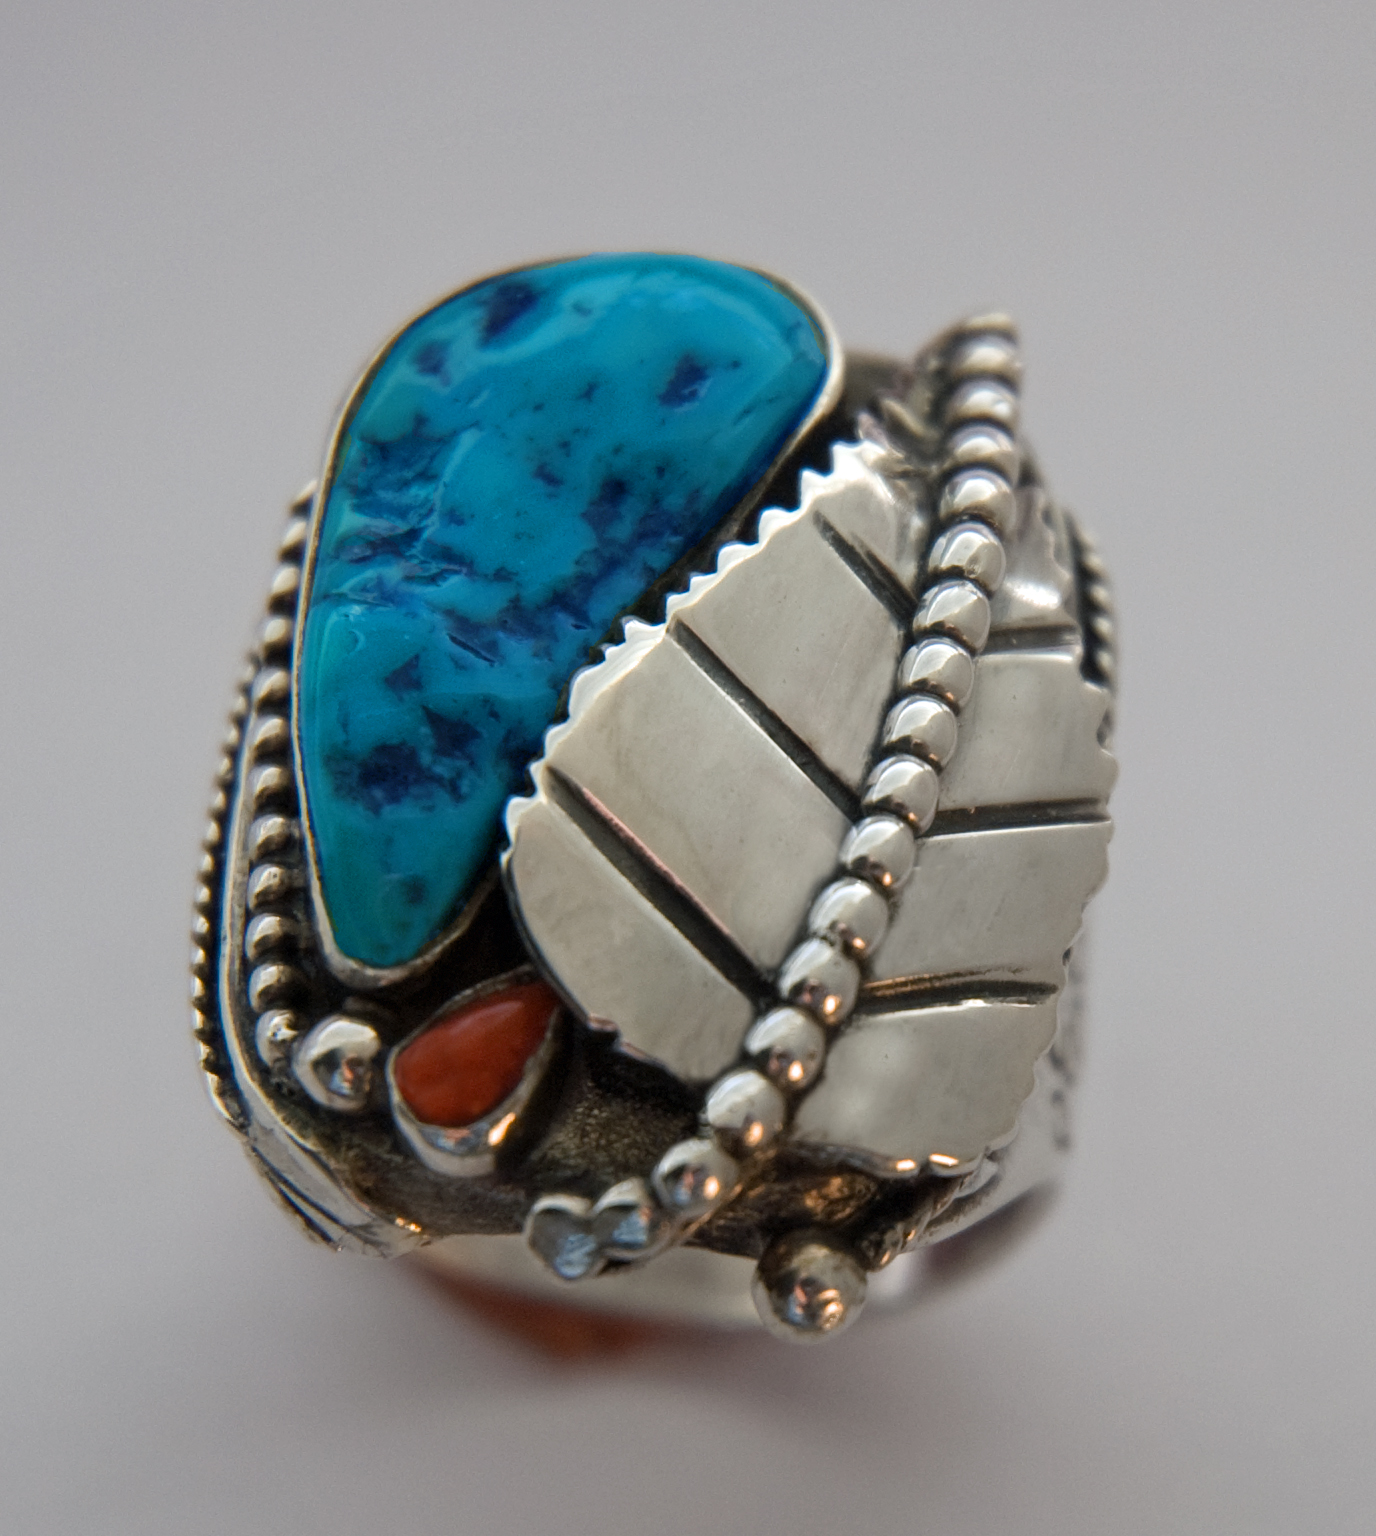 Ojibwe cycle of life ring handcrafted by Zhaawano Unieke Trouwringen